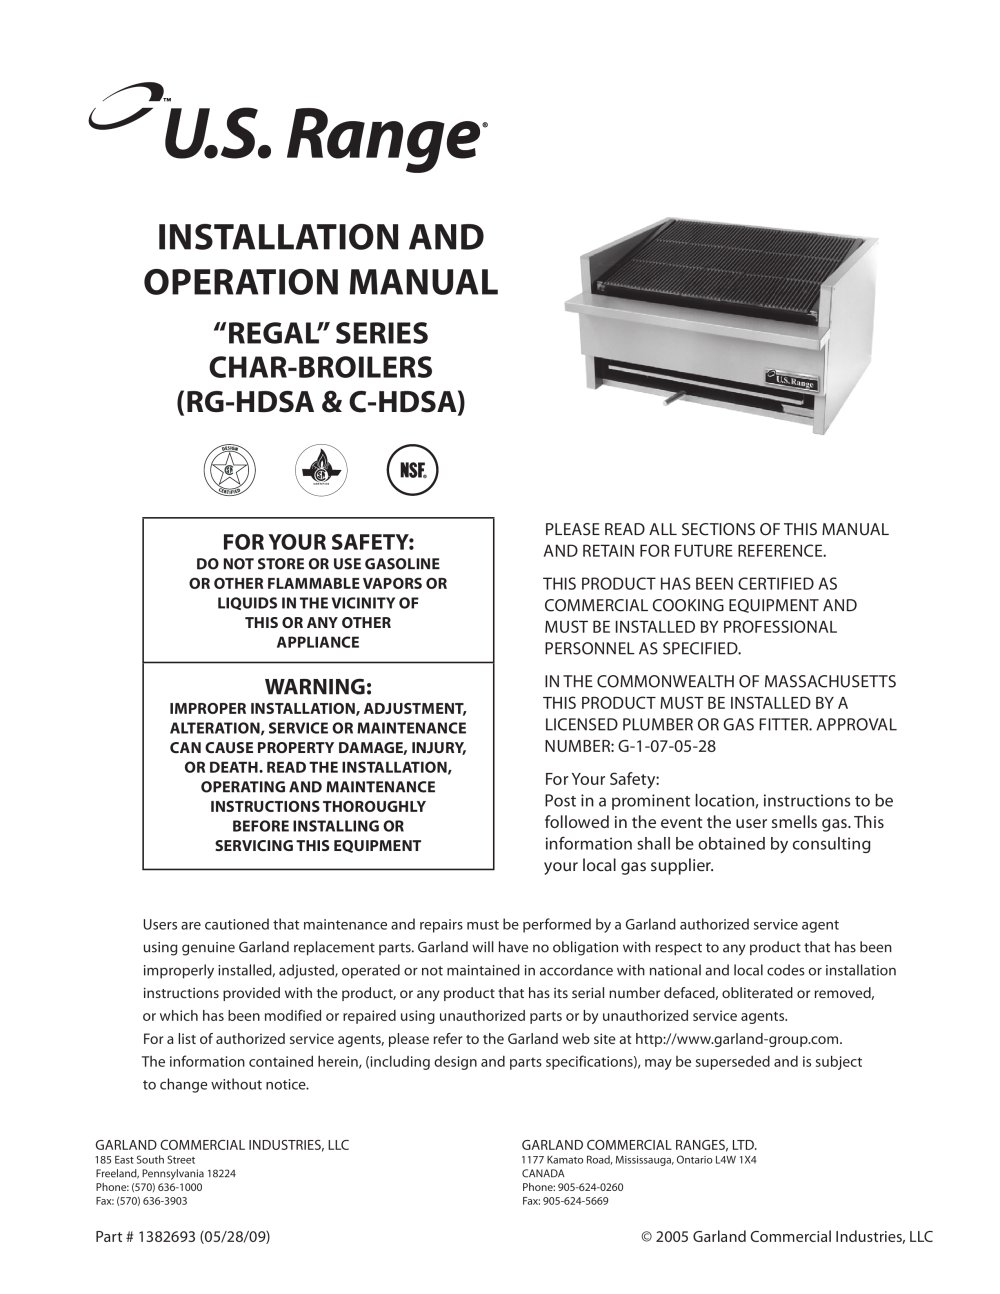 InstallationOperation Manual All RGHDSA CHDSA Series Gas – Operation Manual